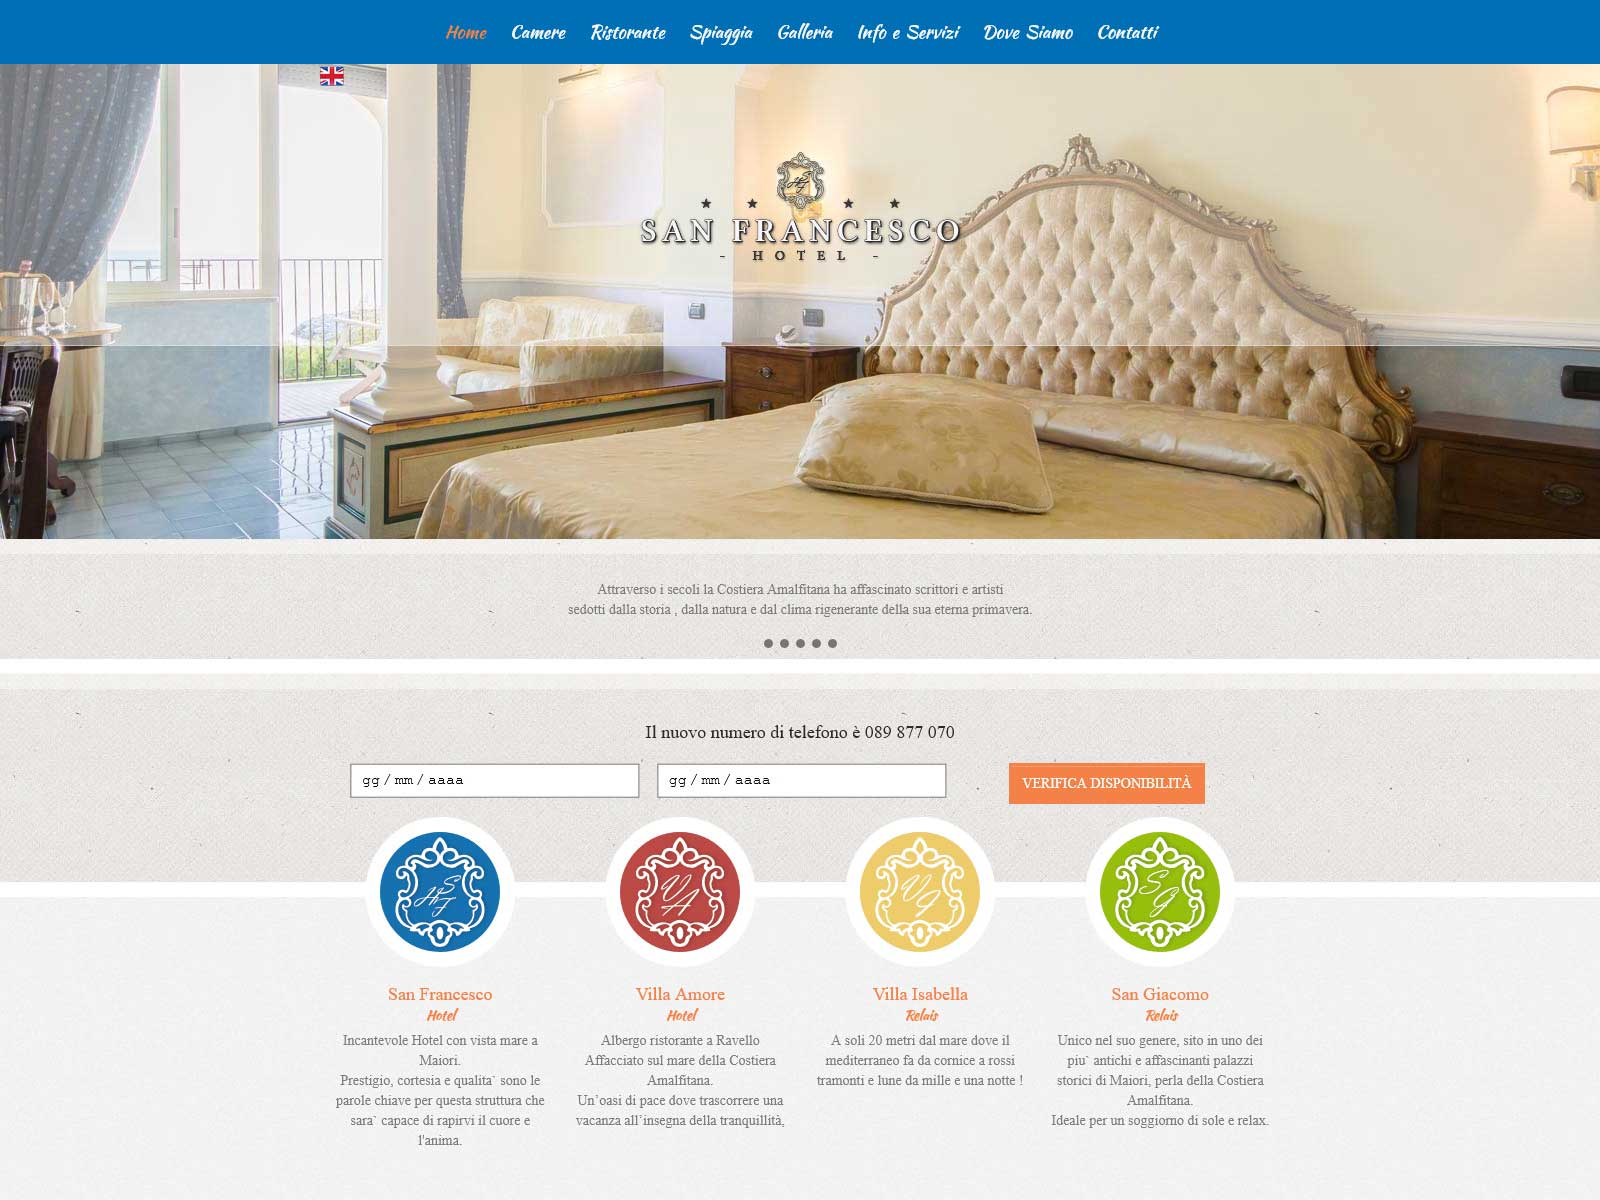 Web design - Site screenshot